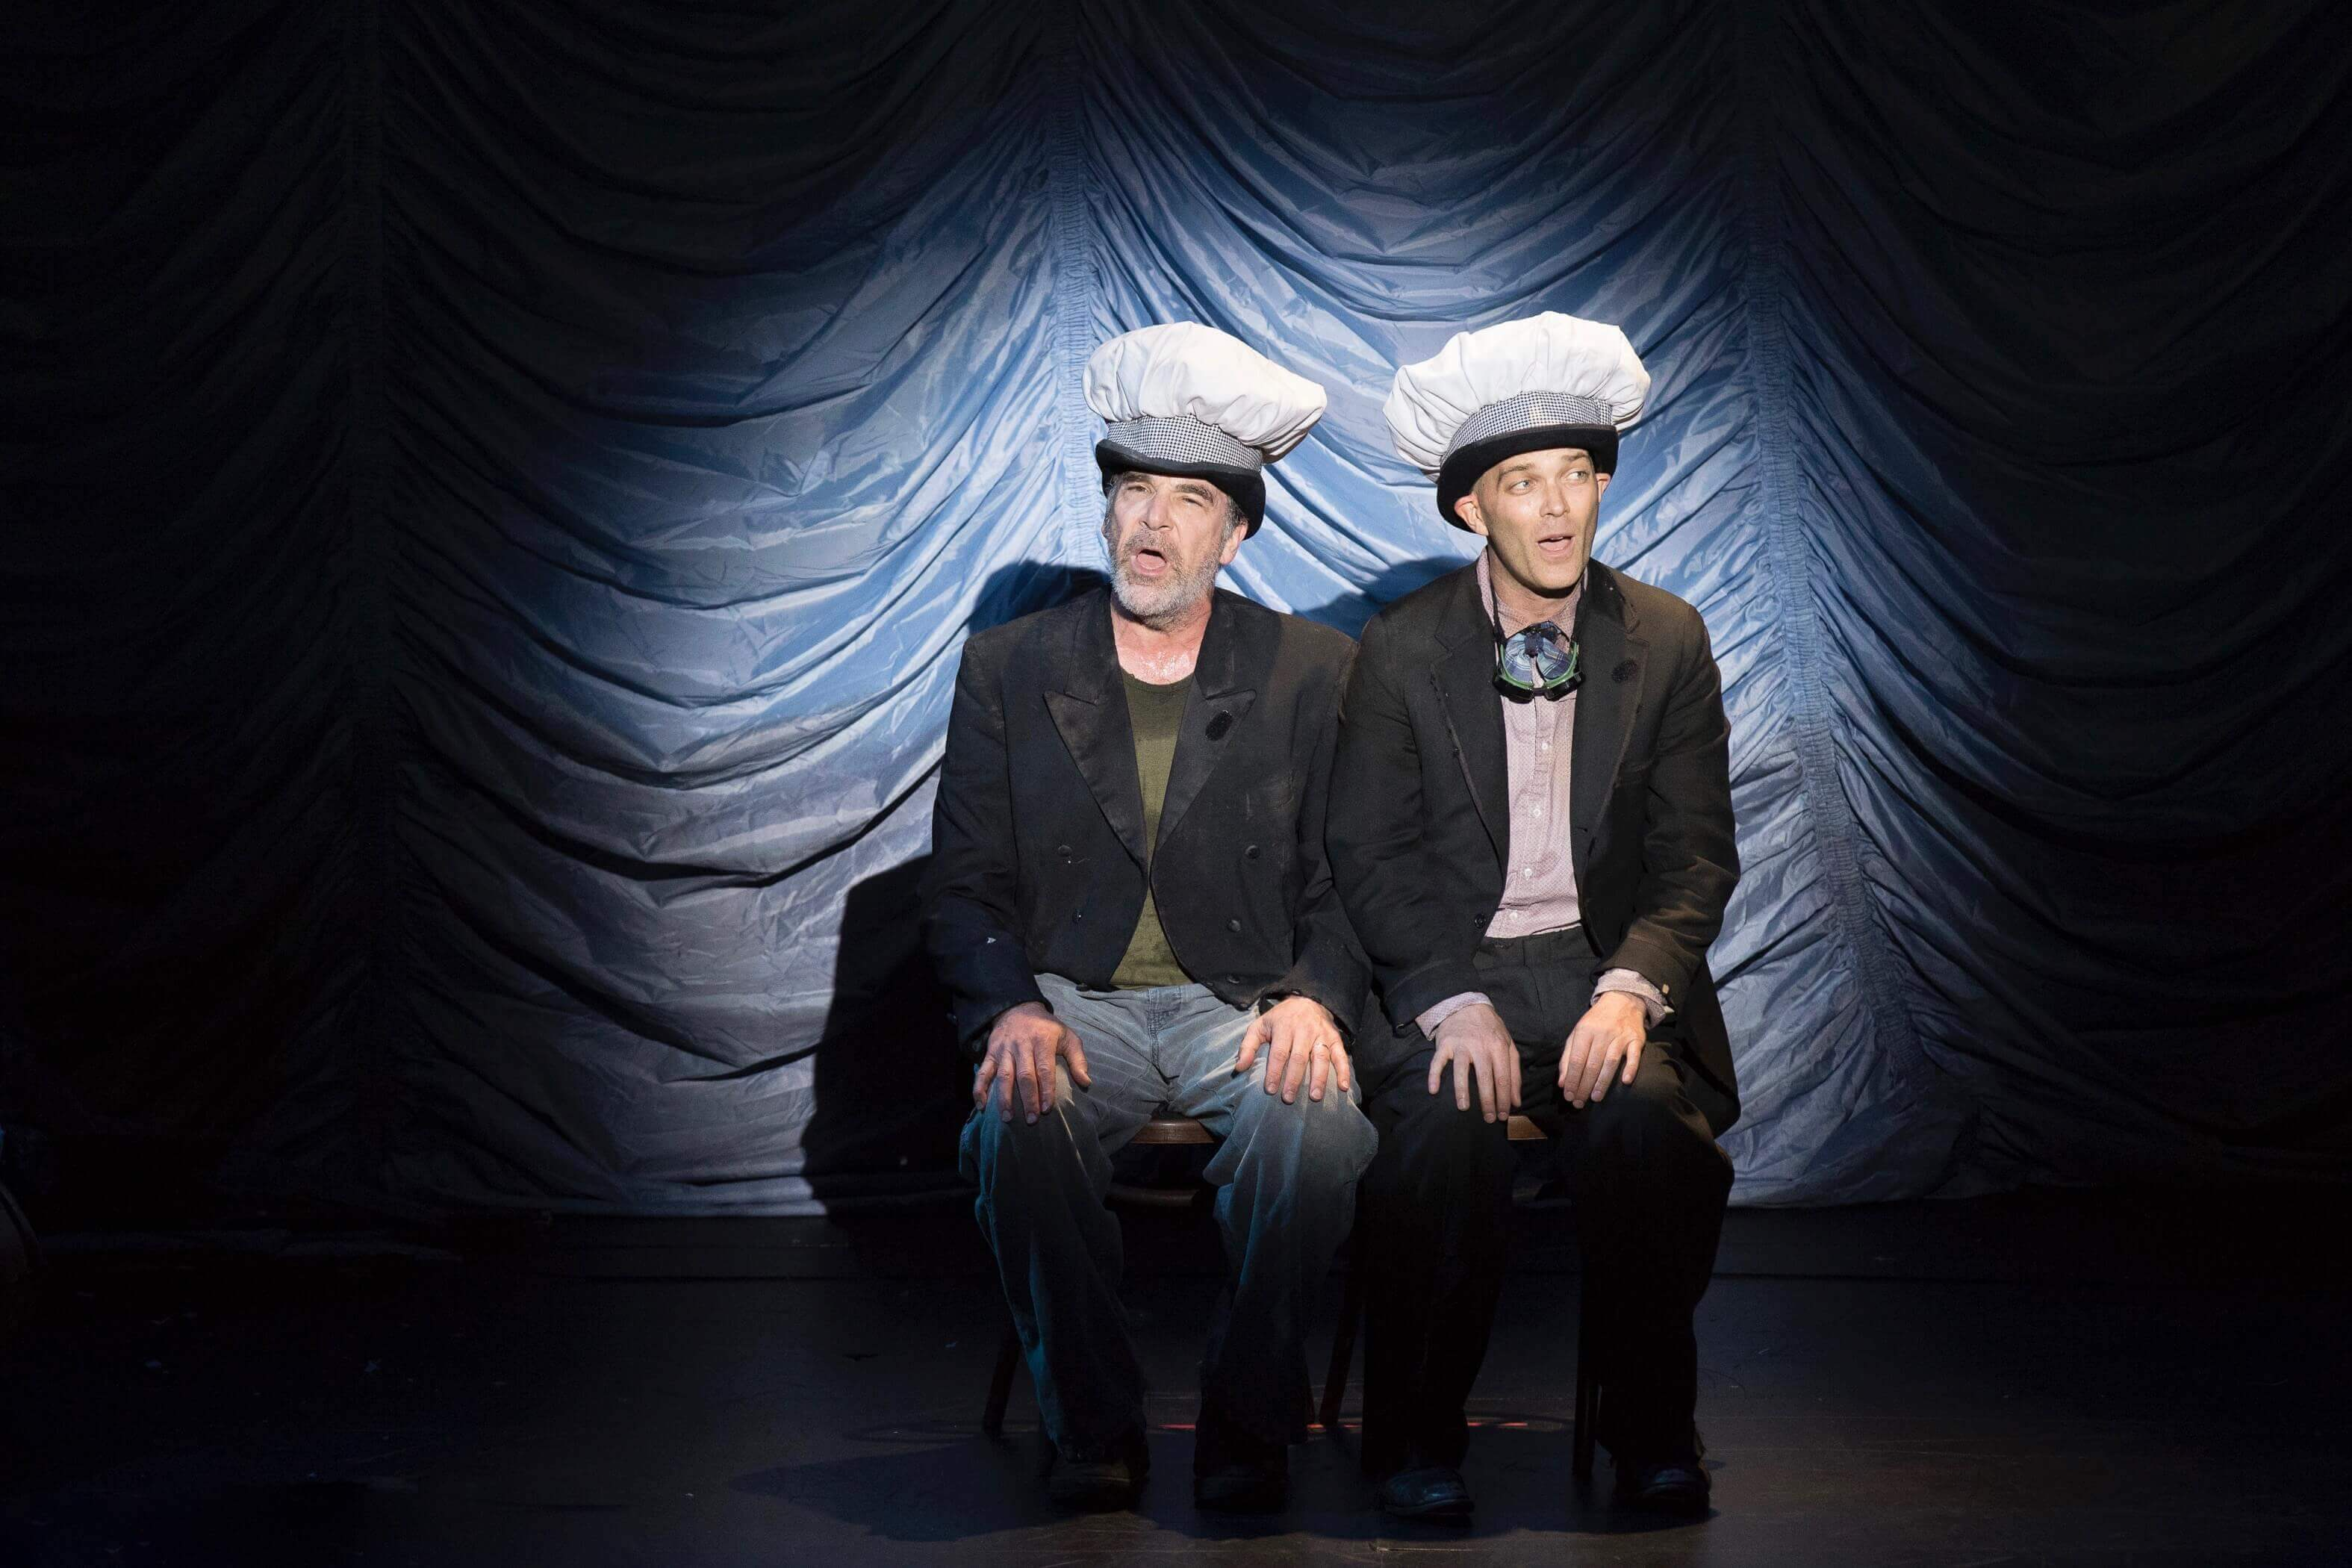 The Last Two People on Earth: An Apocalyptic Vaudeville